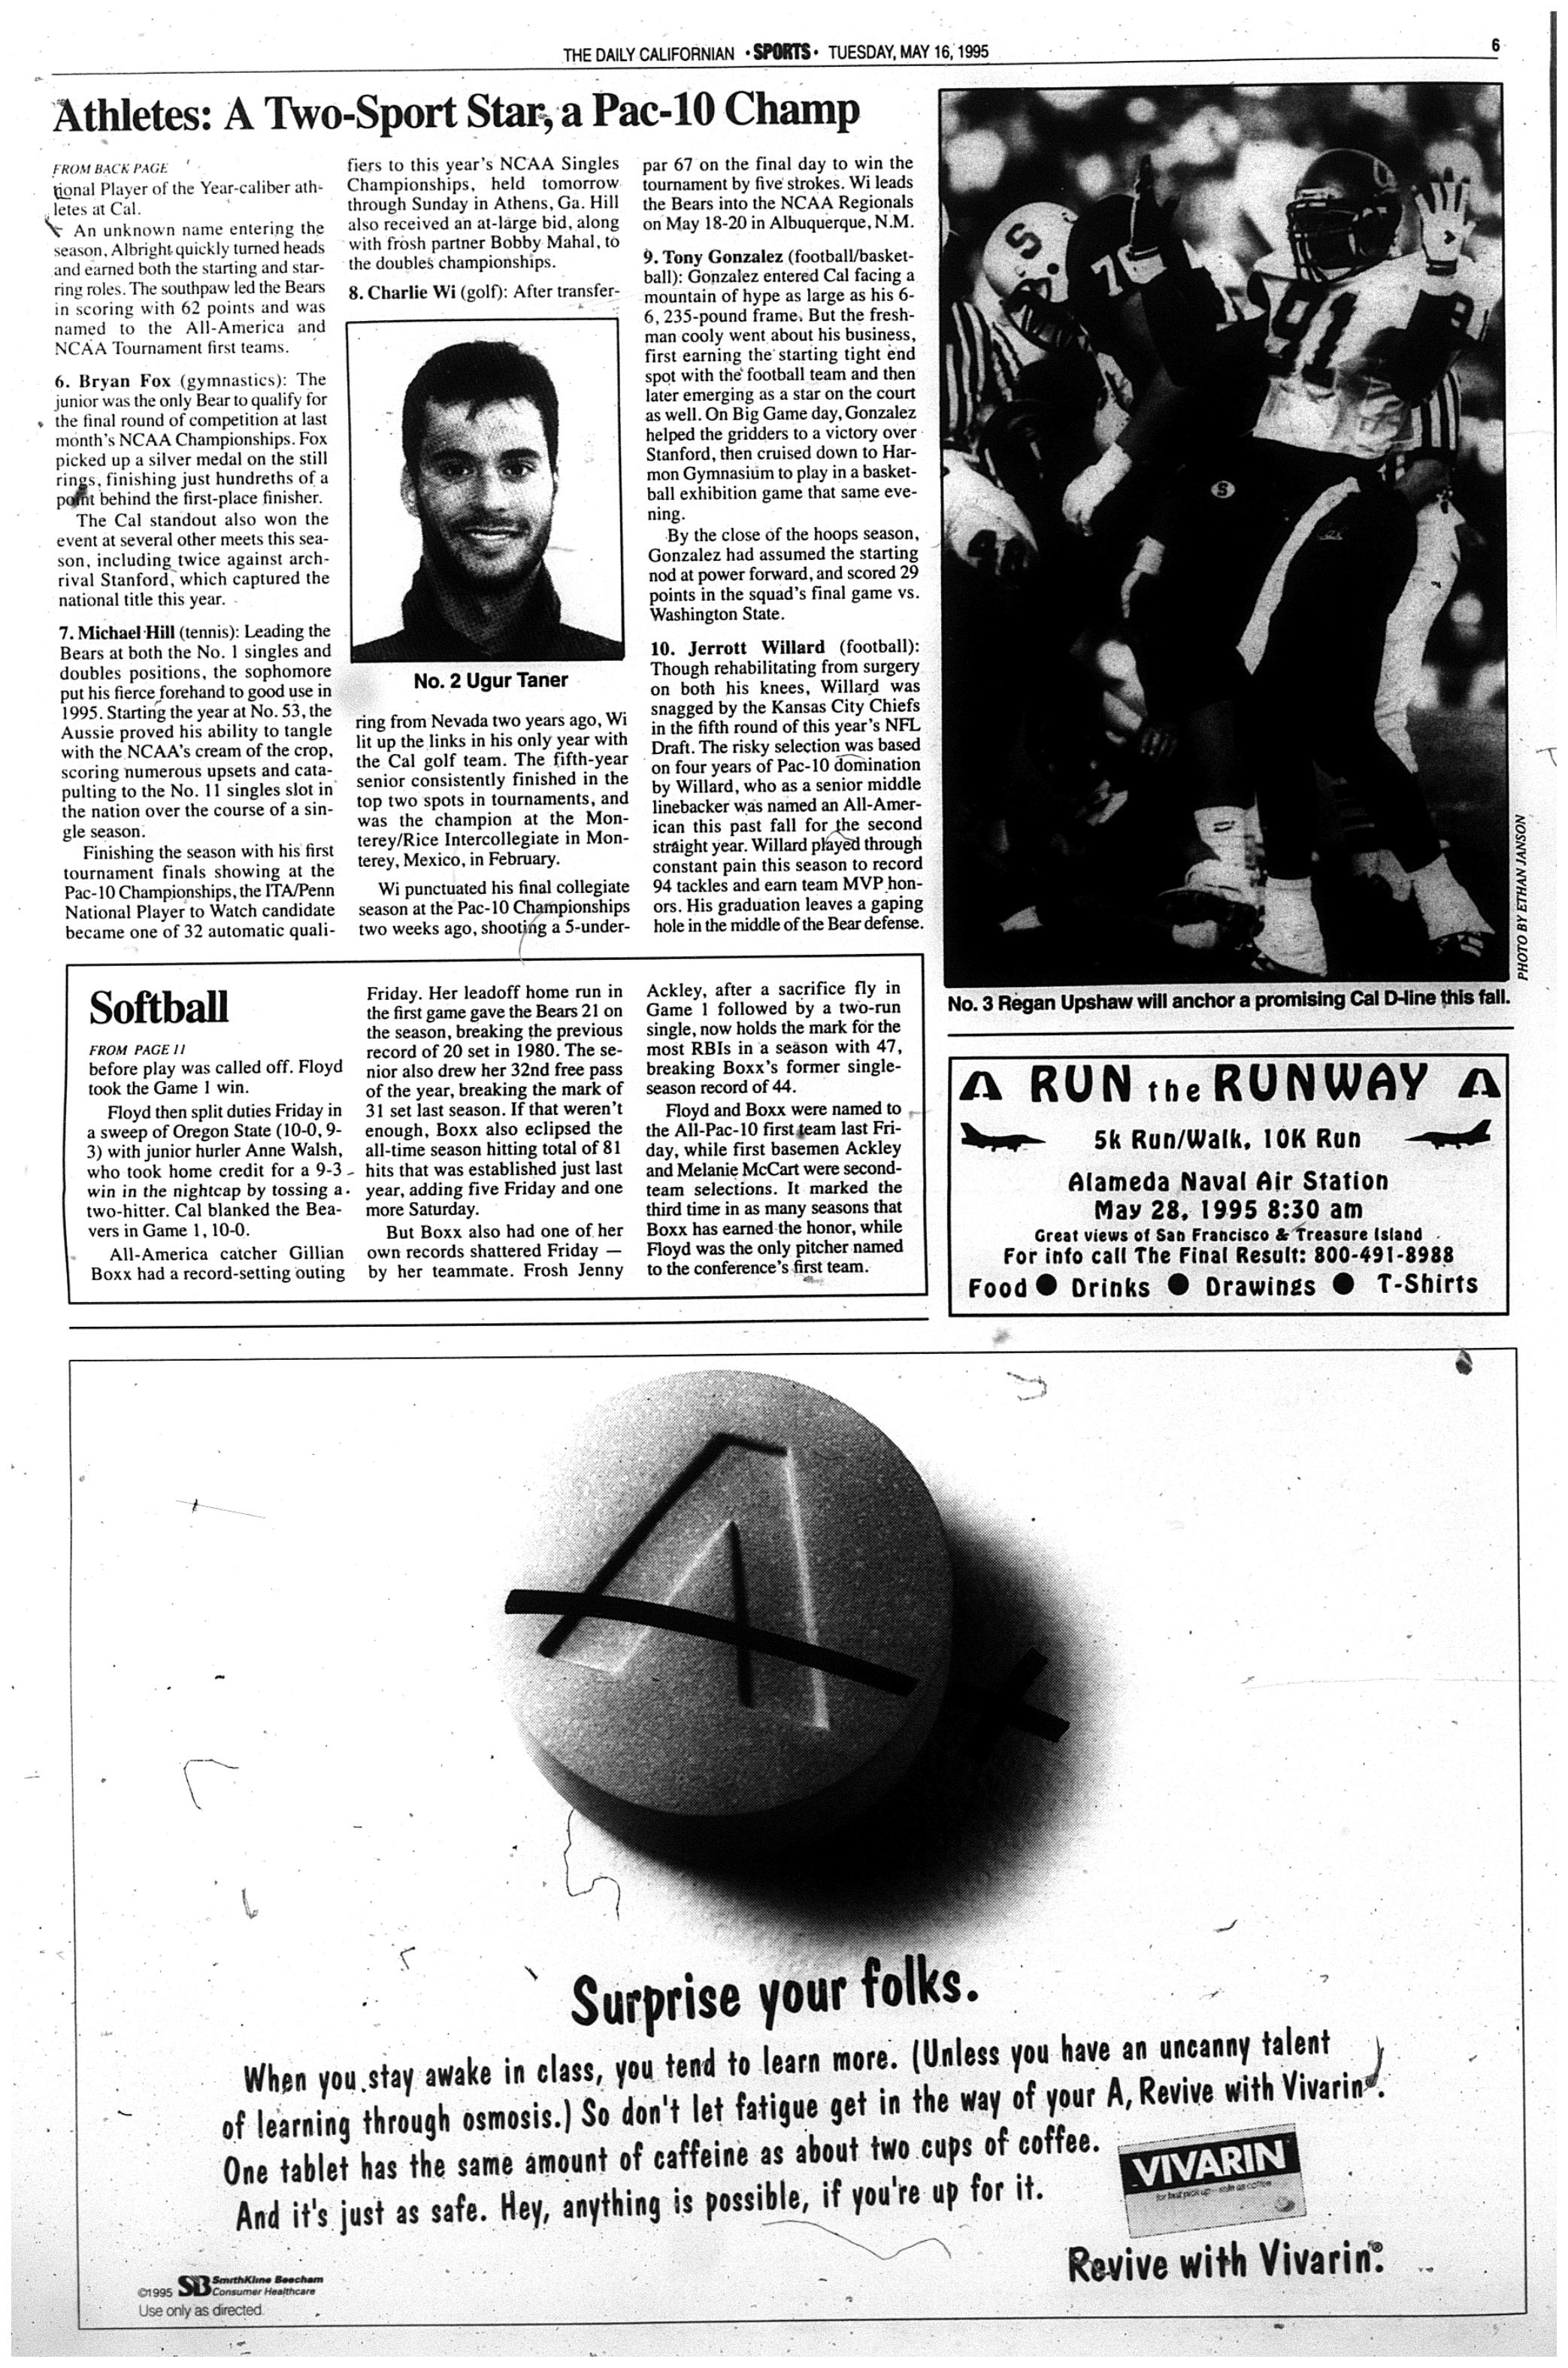 May 16, 1995 | The Daily Californian Archive